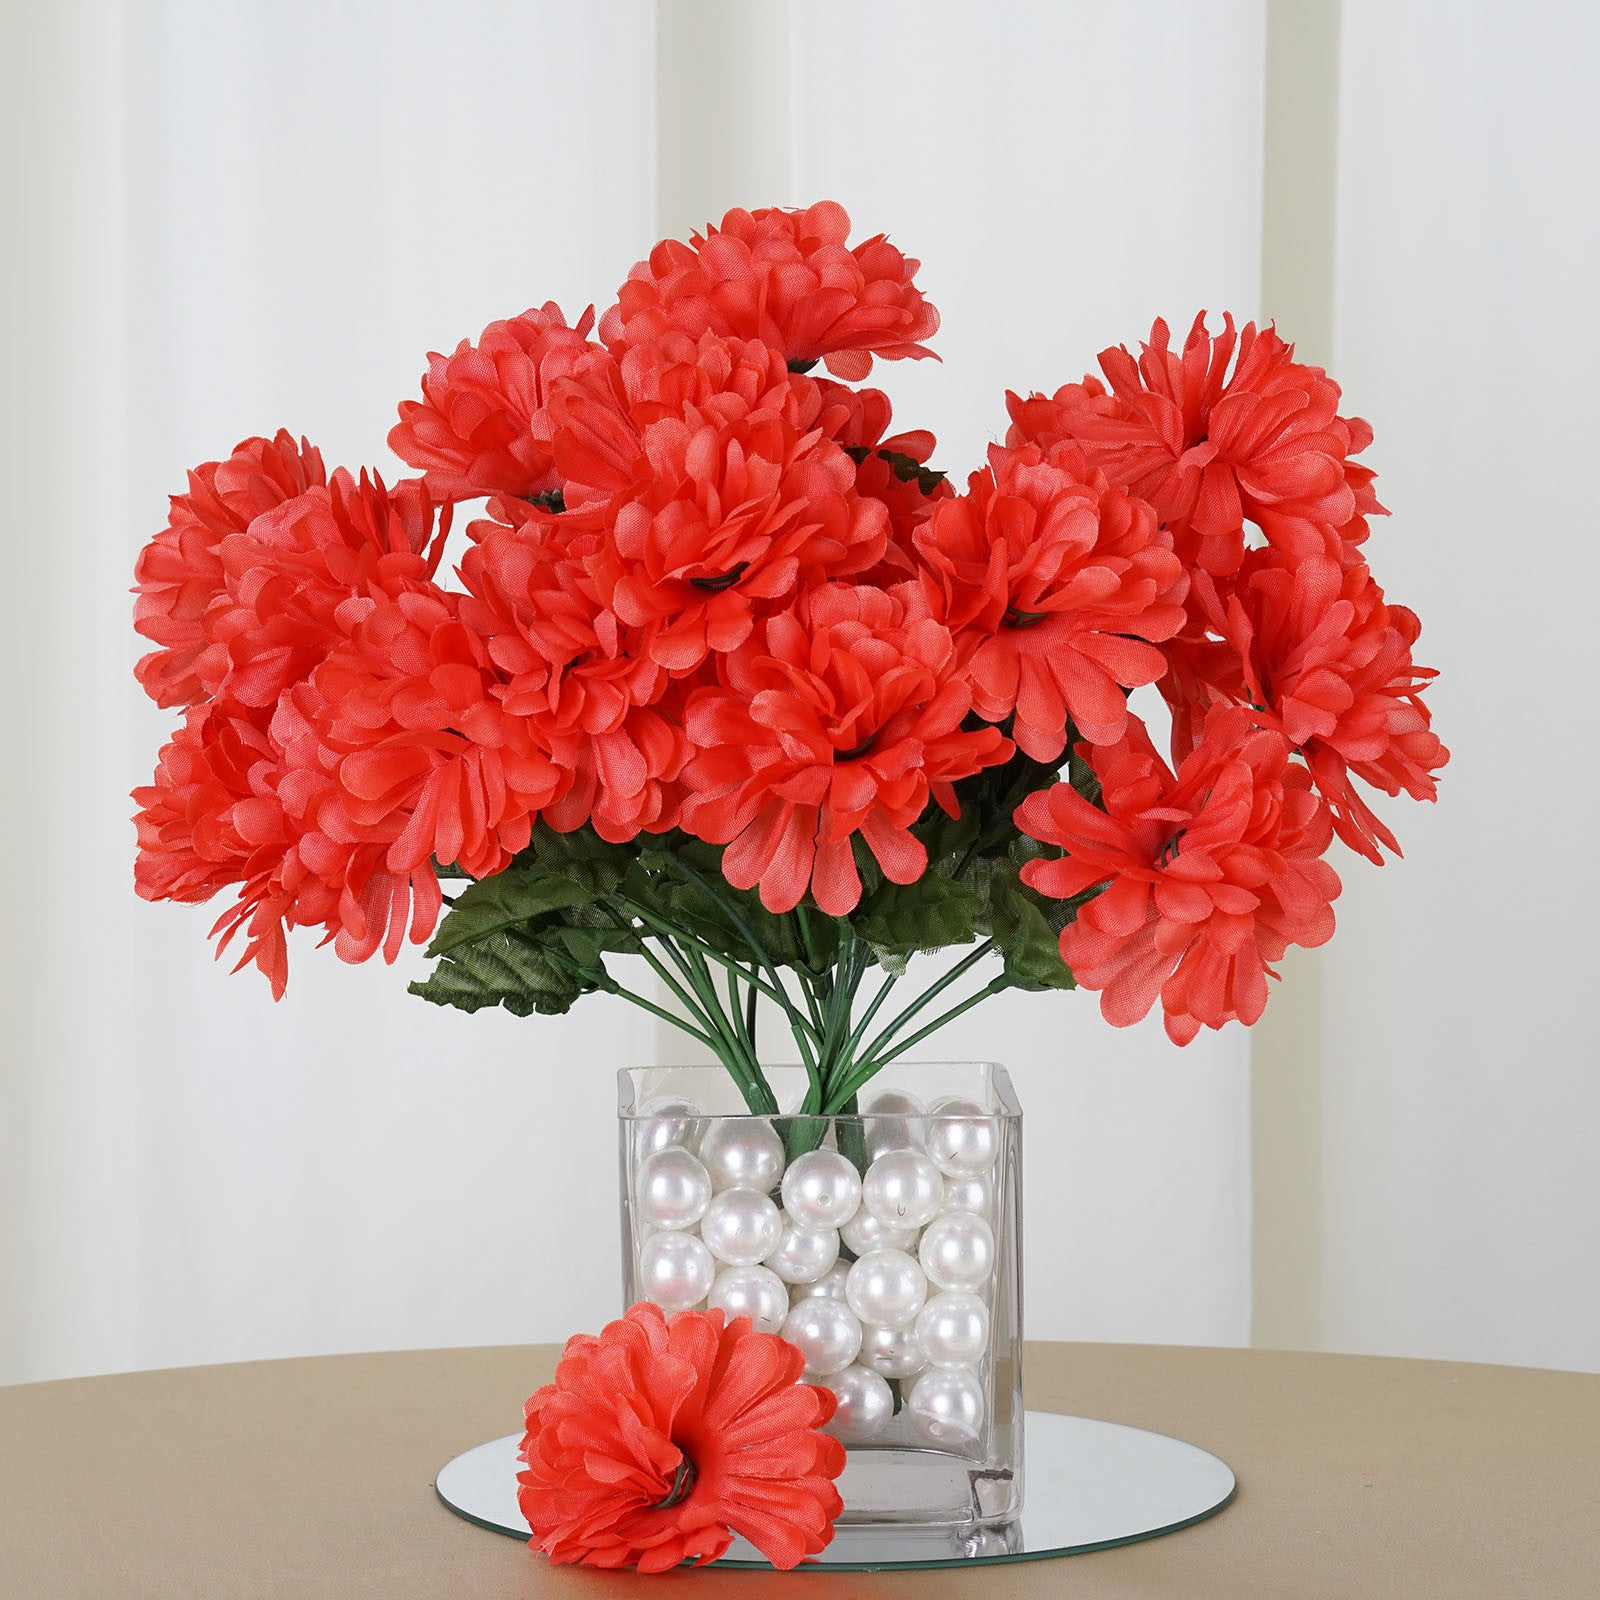 Coral 12 Bushes With 84 Artificial Silk Chrysanthemum Flower Bush